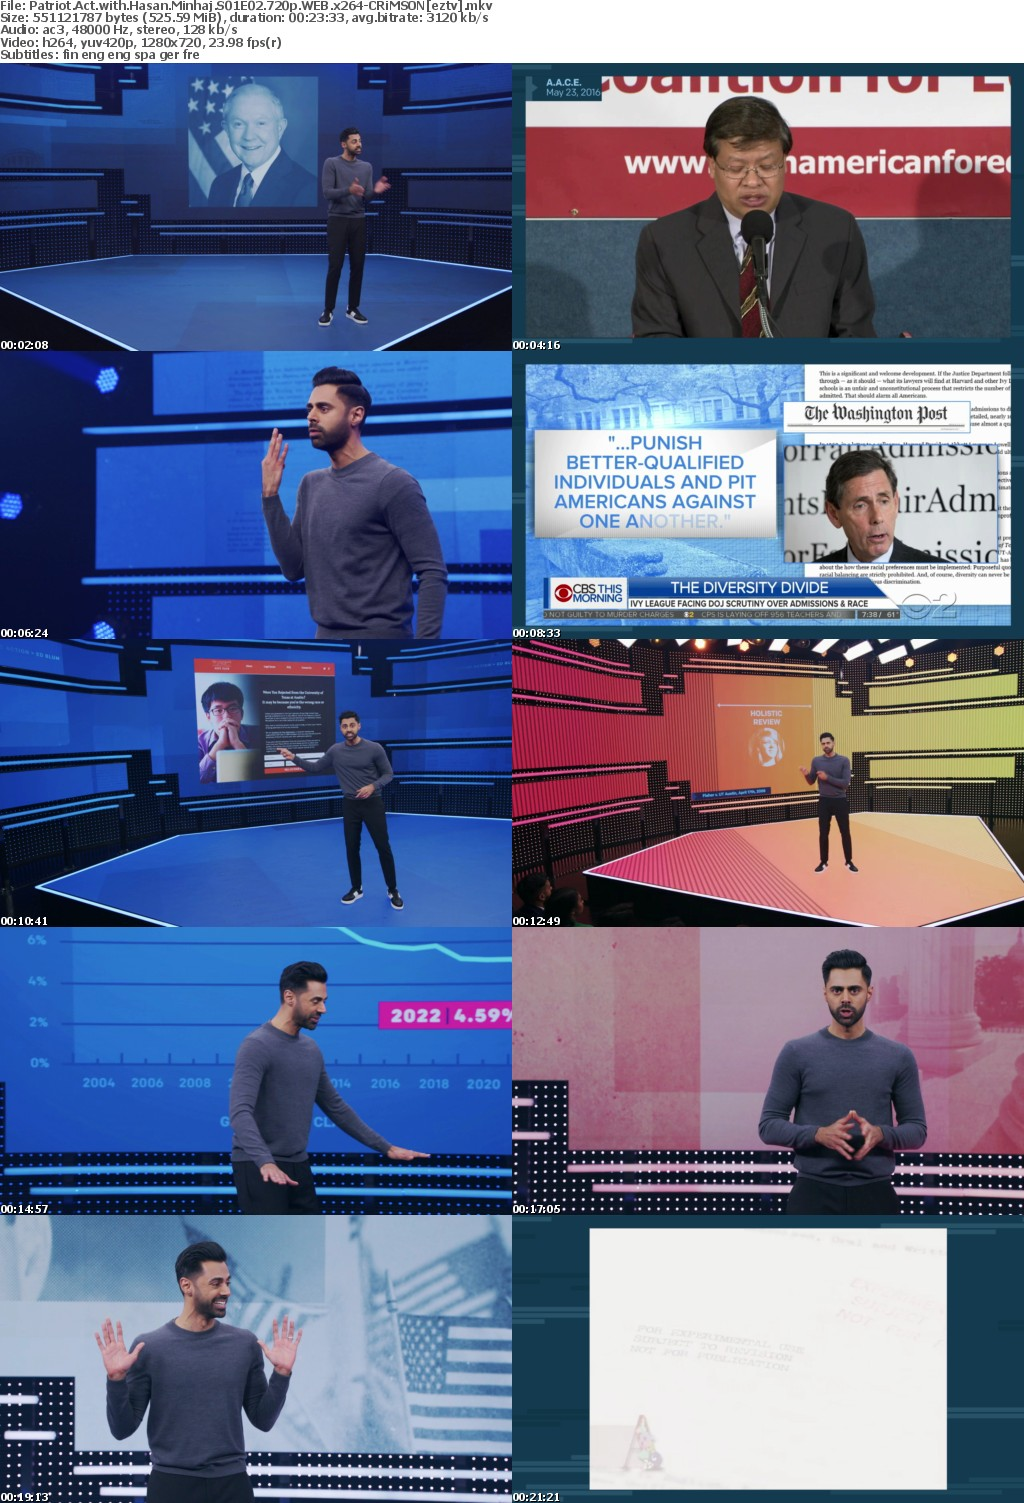 Patriot Act with Hasan Minhaj S01E02 720p WEB x264-CRiMSON